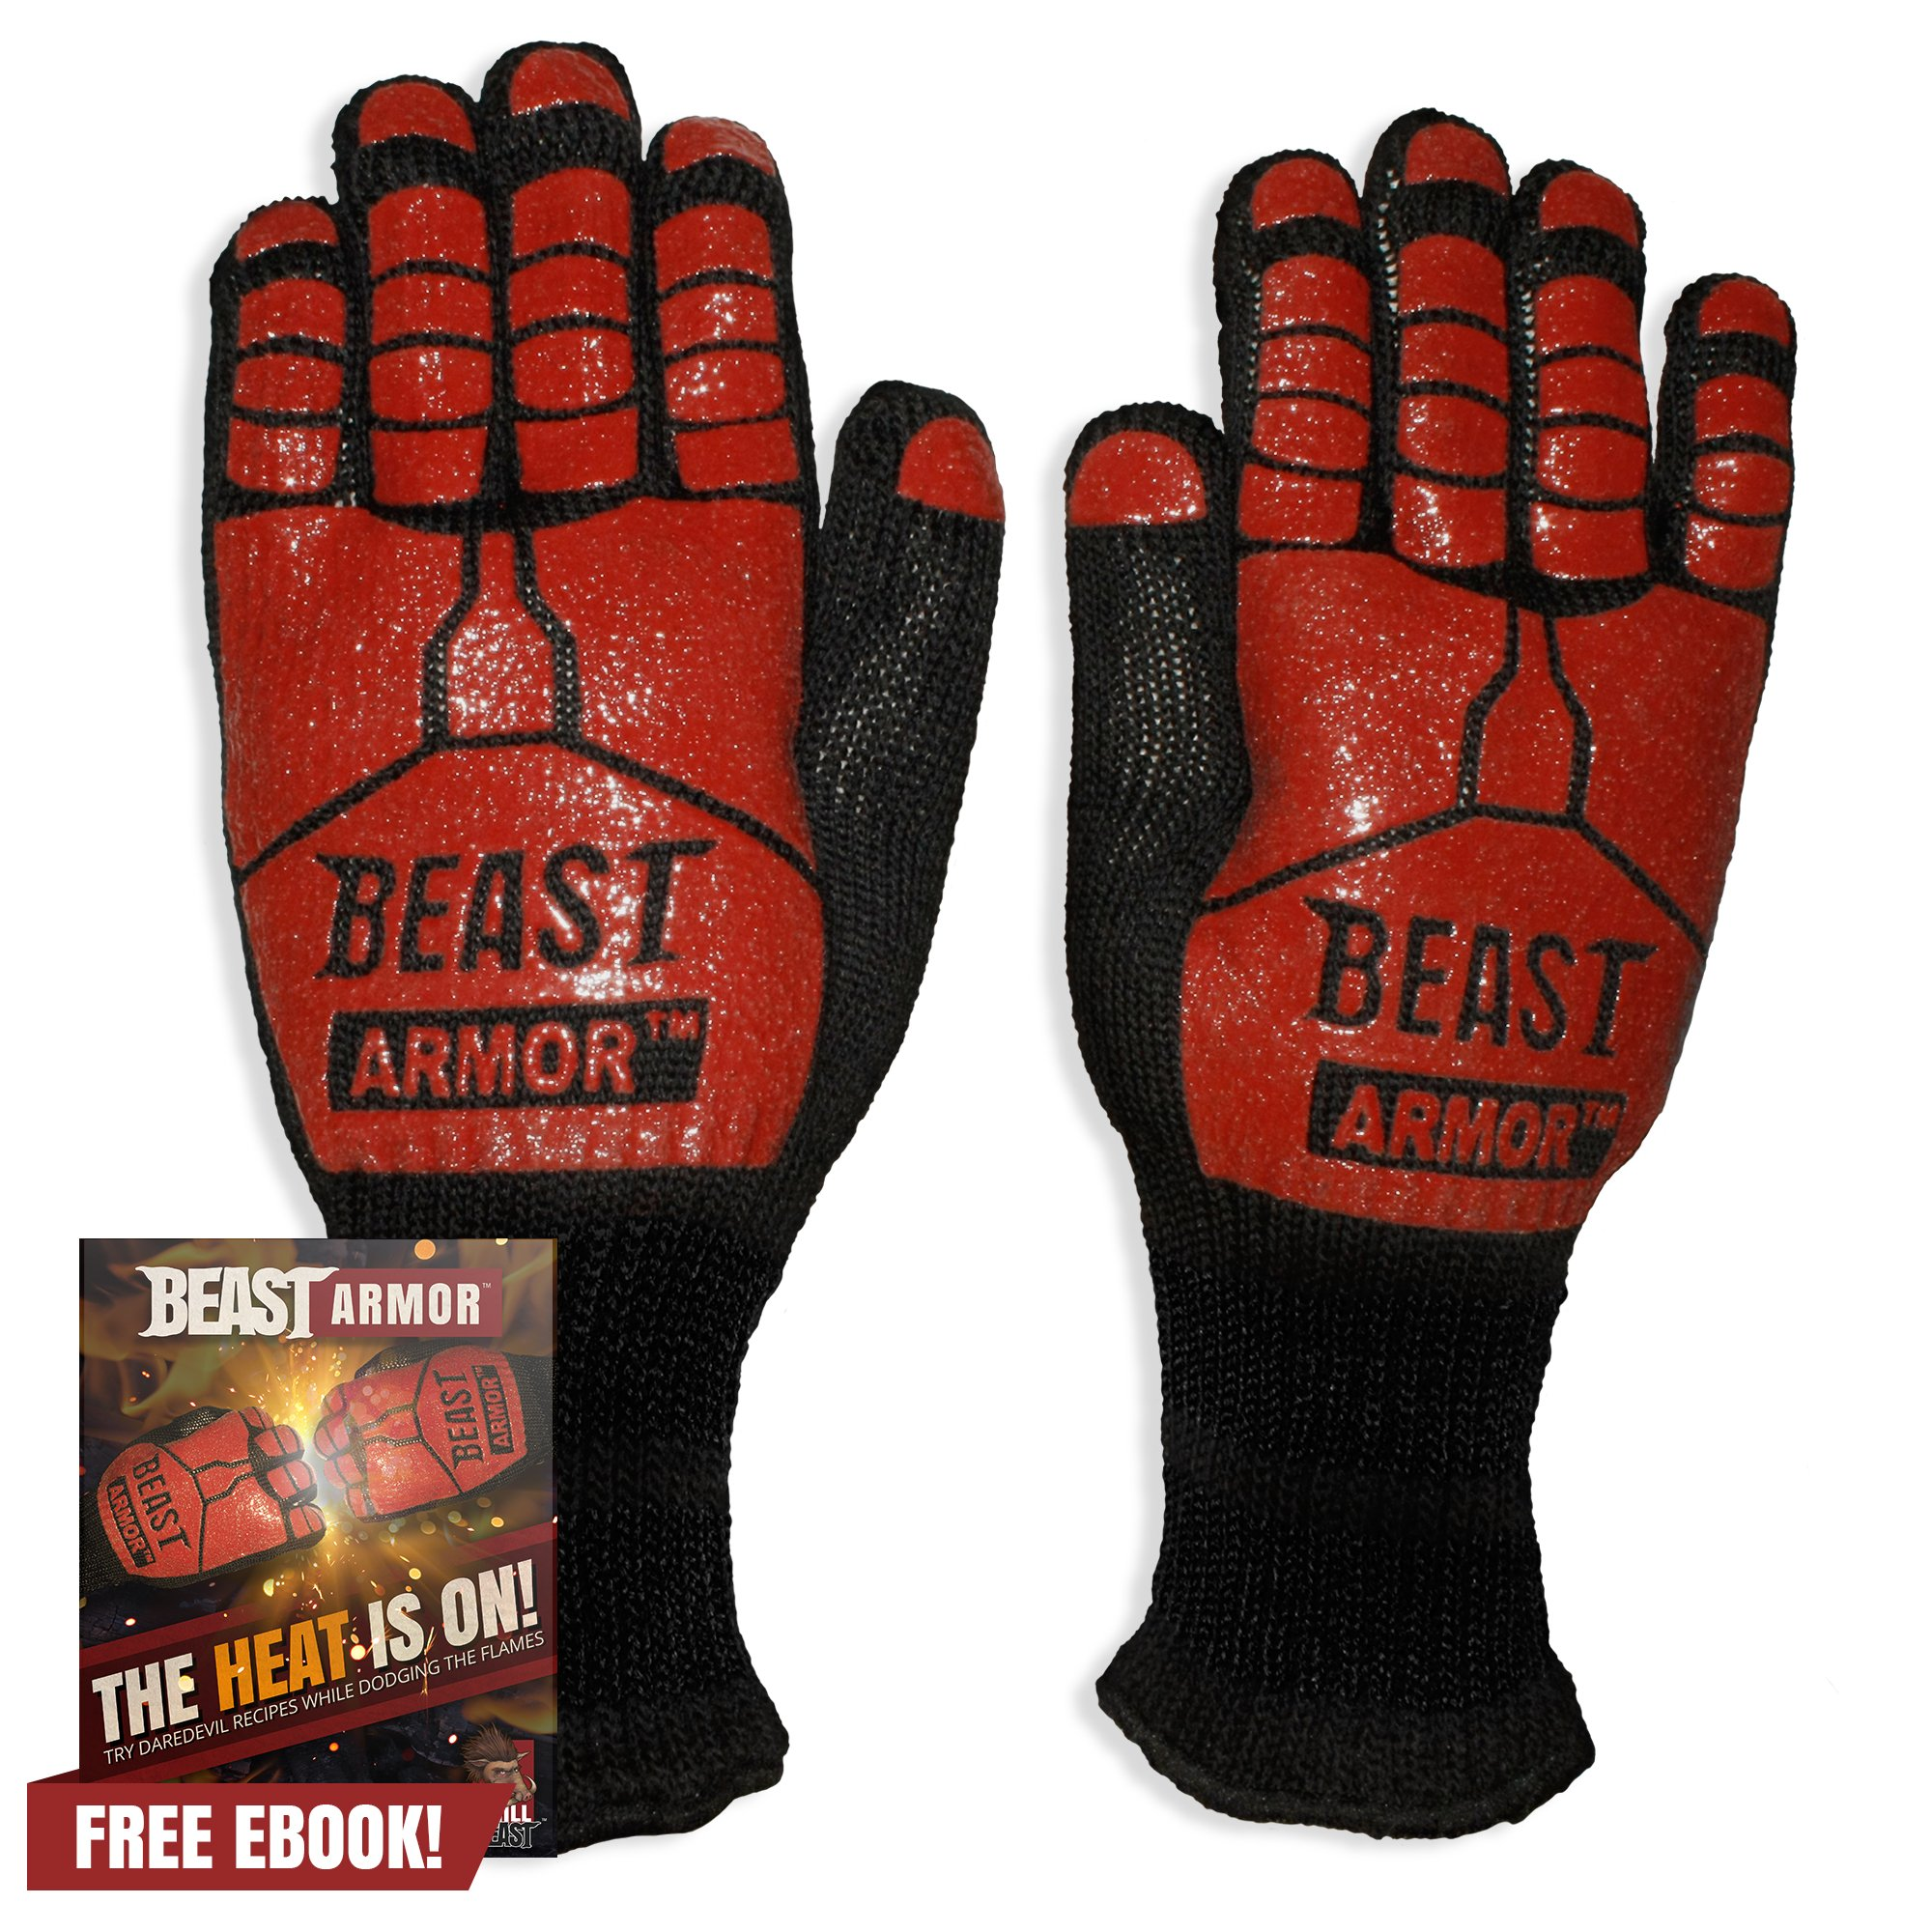 Grill Beast BBQ Grilling Cooking Gloves - Heat Resistant & Silicone Insulated Protection - Smoker Accessories by Grill Beast